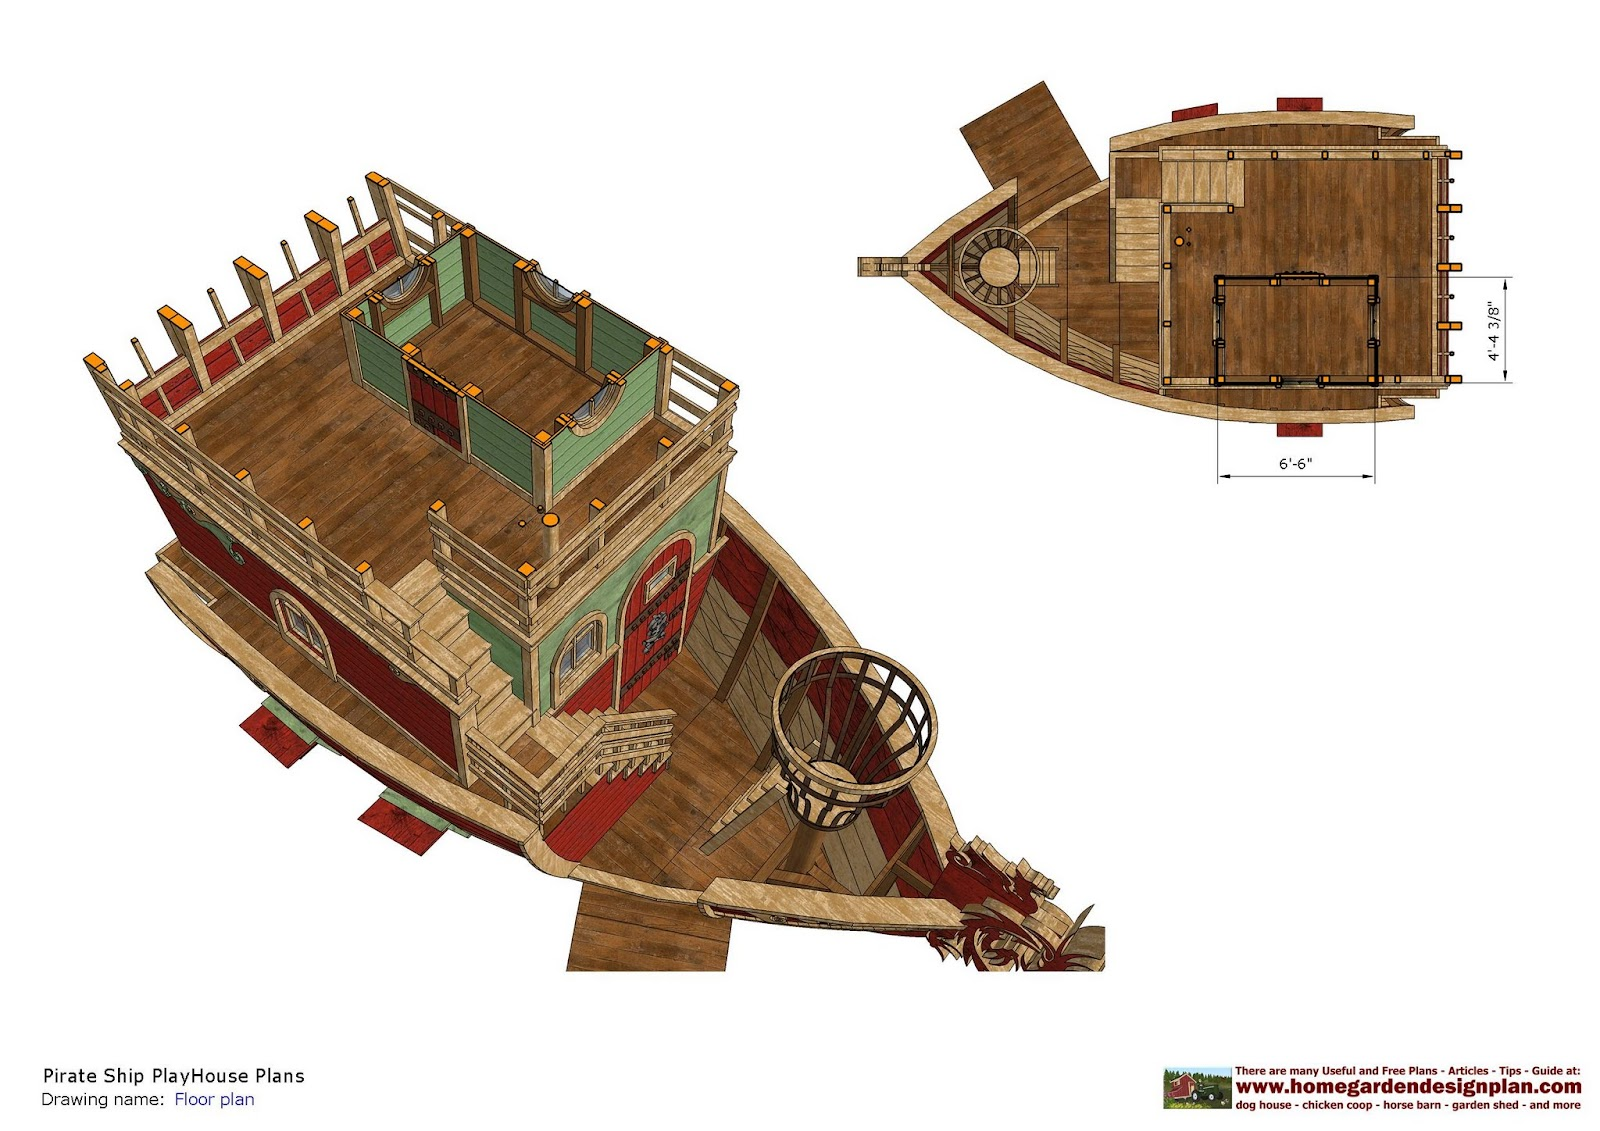 Home garden plans ps100 pirates ship playhouse plans for Playhouse plans free